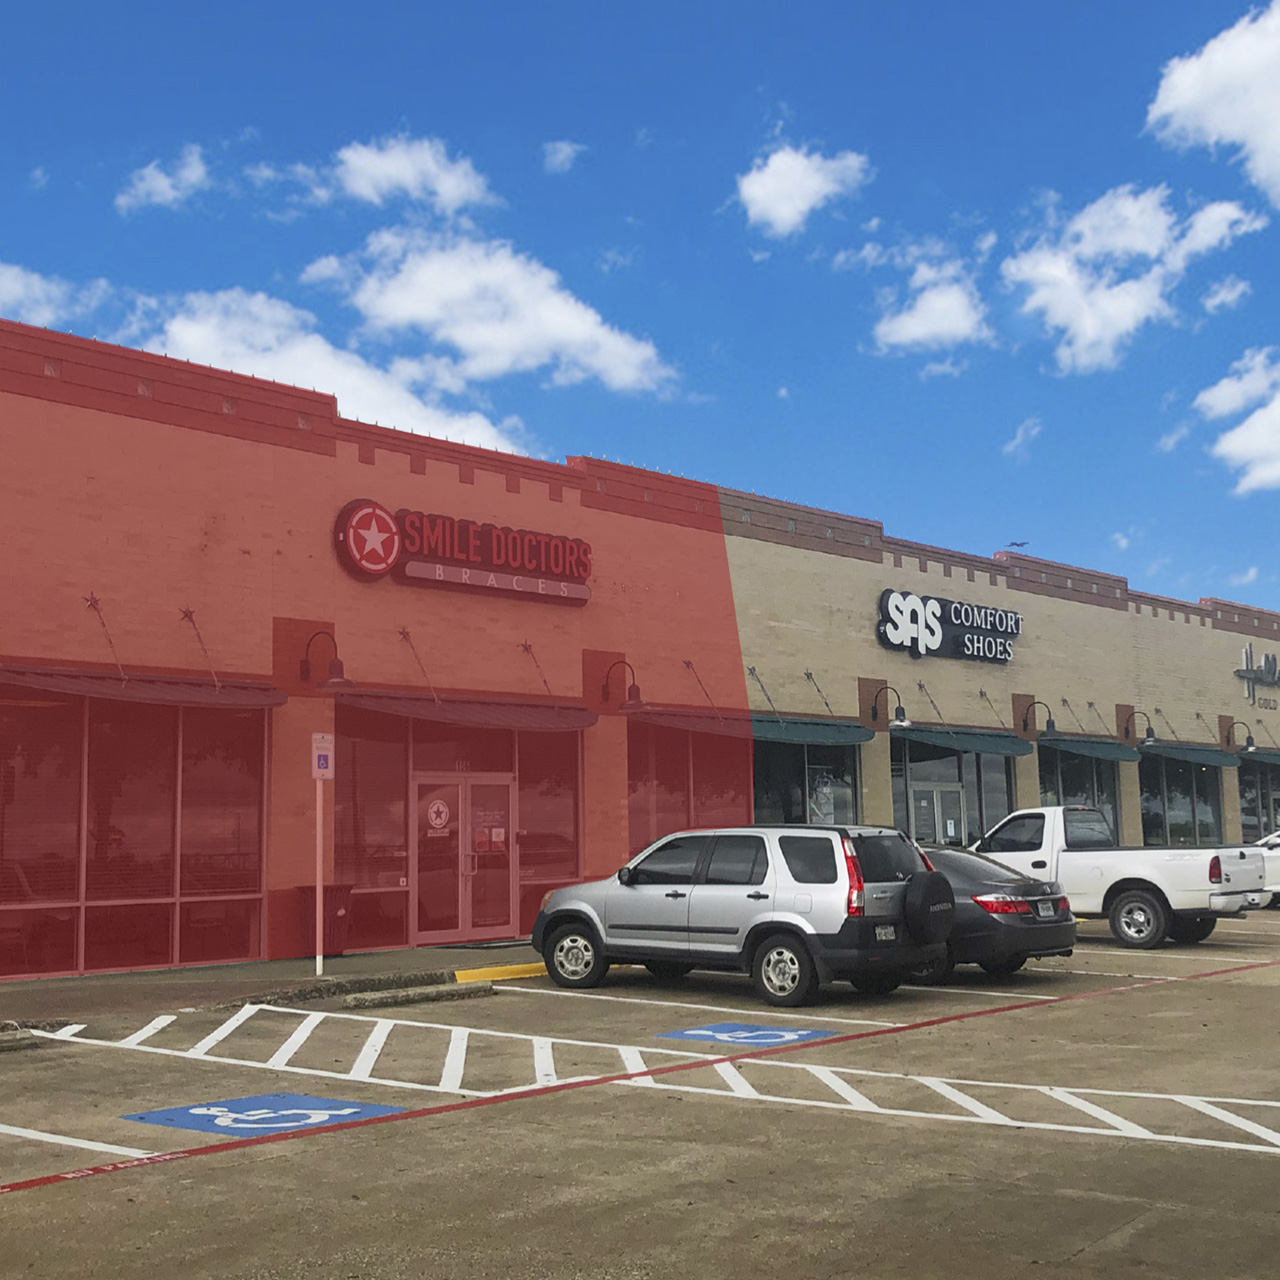 2417 W. Stemmons Freeway featured image